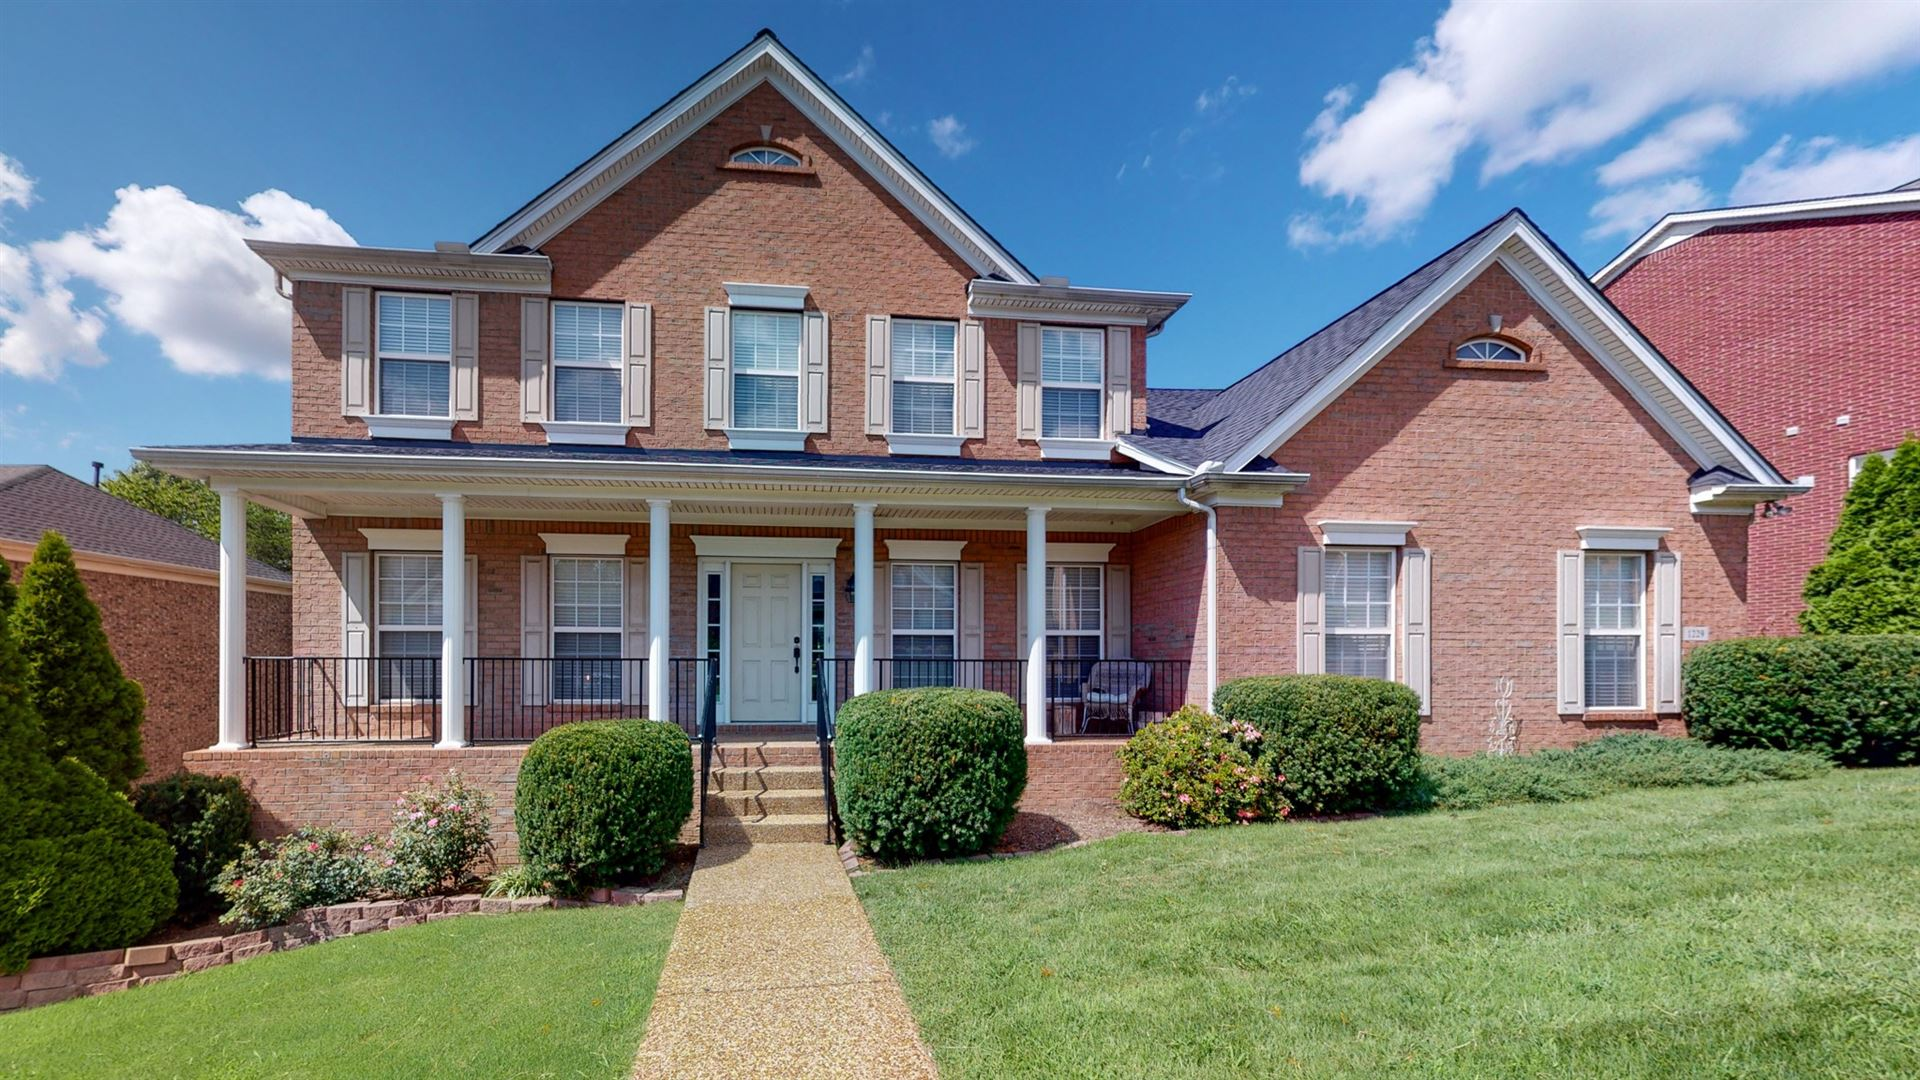 1229 Lighthouse Pl, Brentwood, TN 37027 - MLS#: 2183486